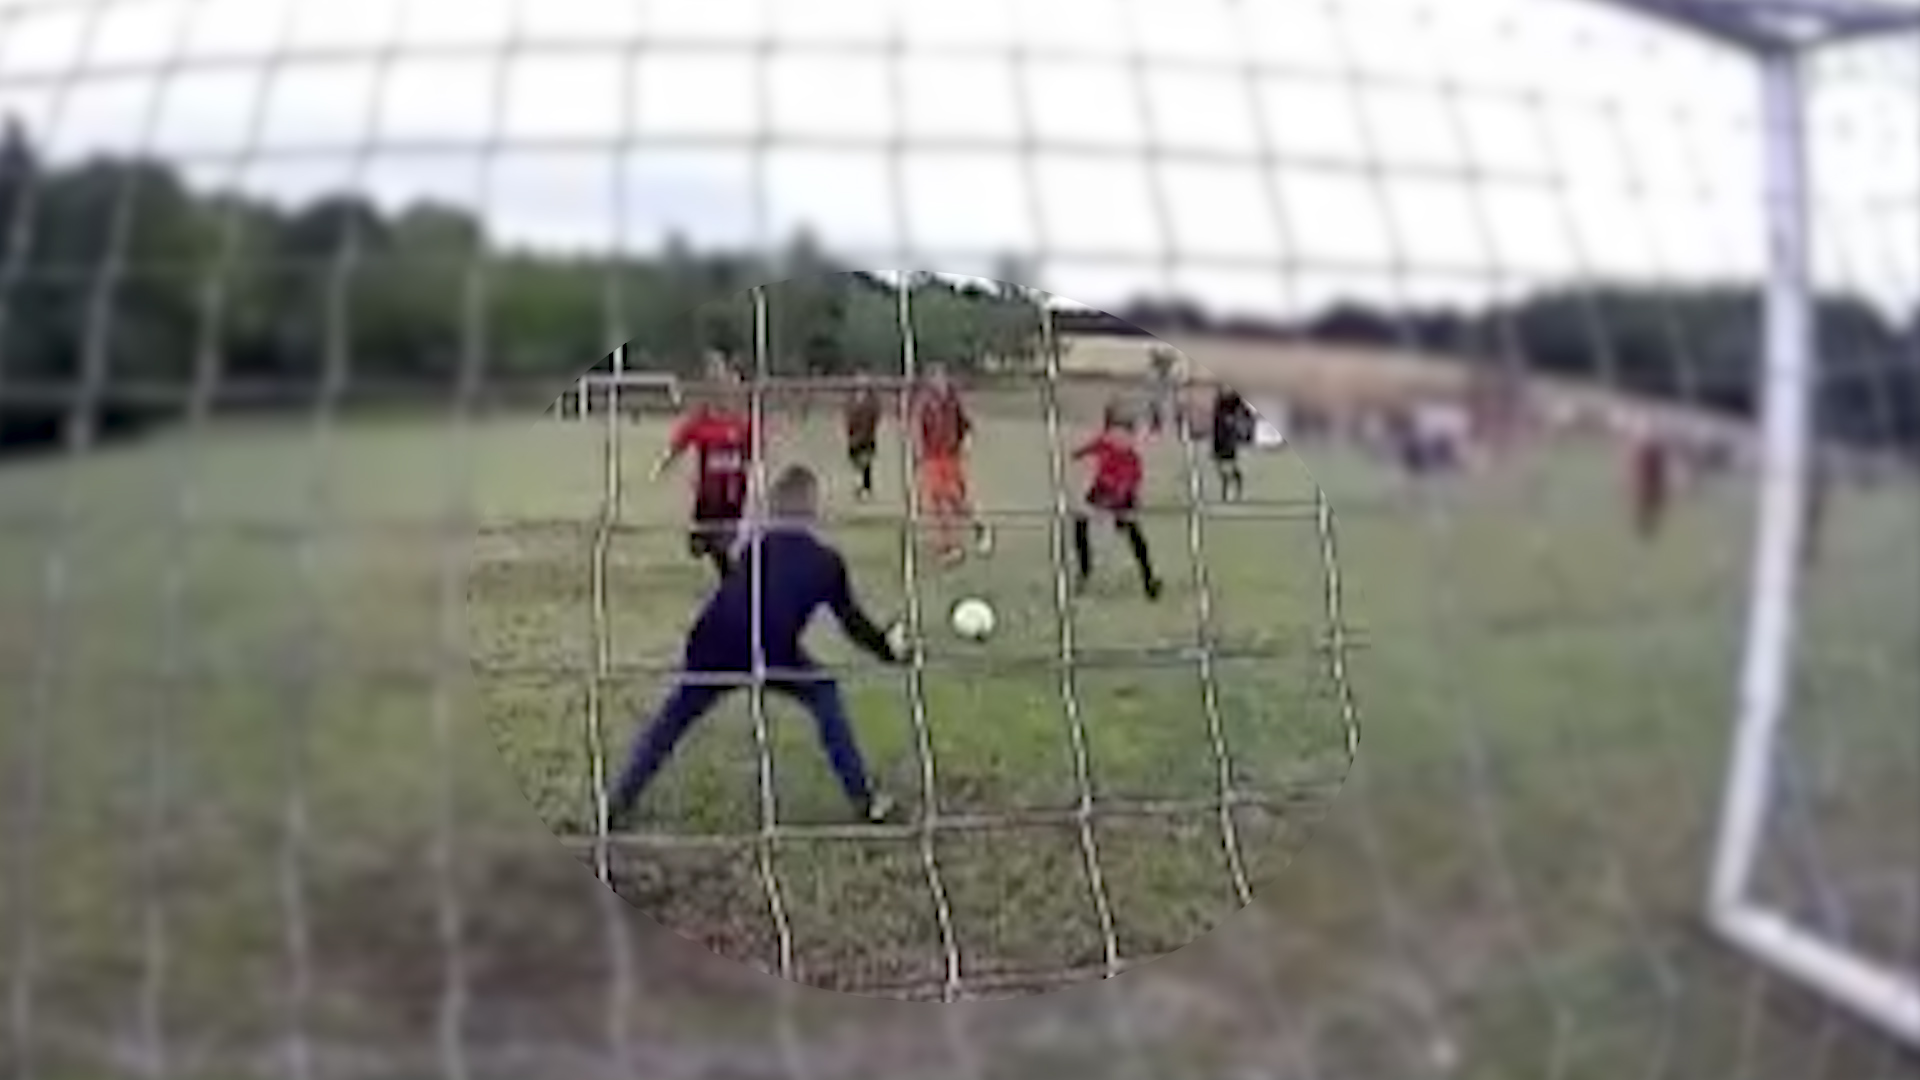 Footage of a 9-year-old goalie losing his soccer game went viral. Then the pros he idolized weighed in.